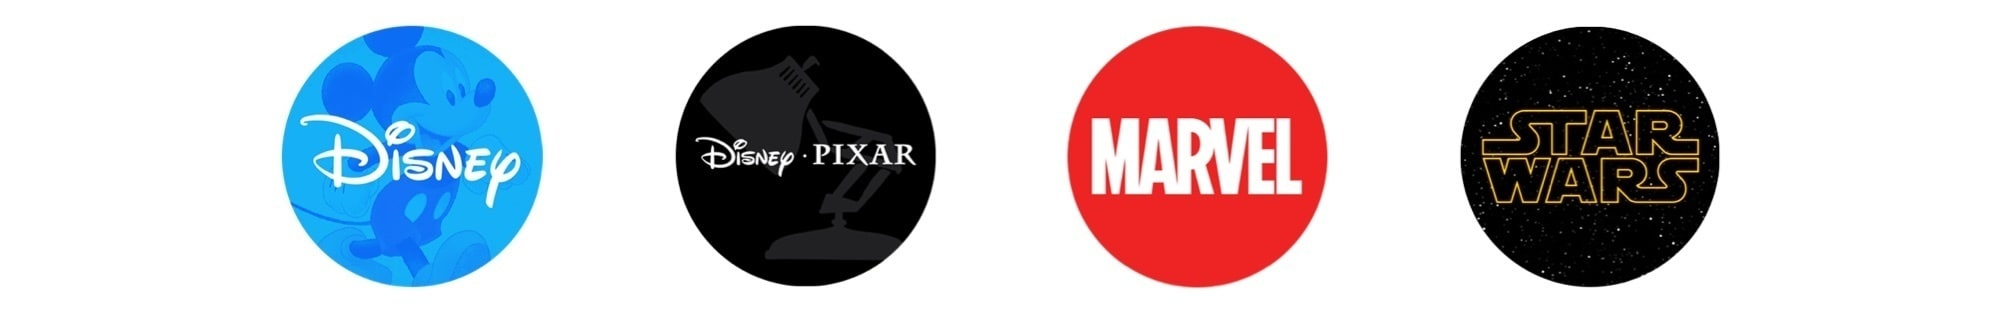 Nuestras marcas, Disney, Pixar, Marvel, Star Wars